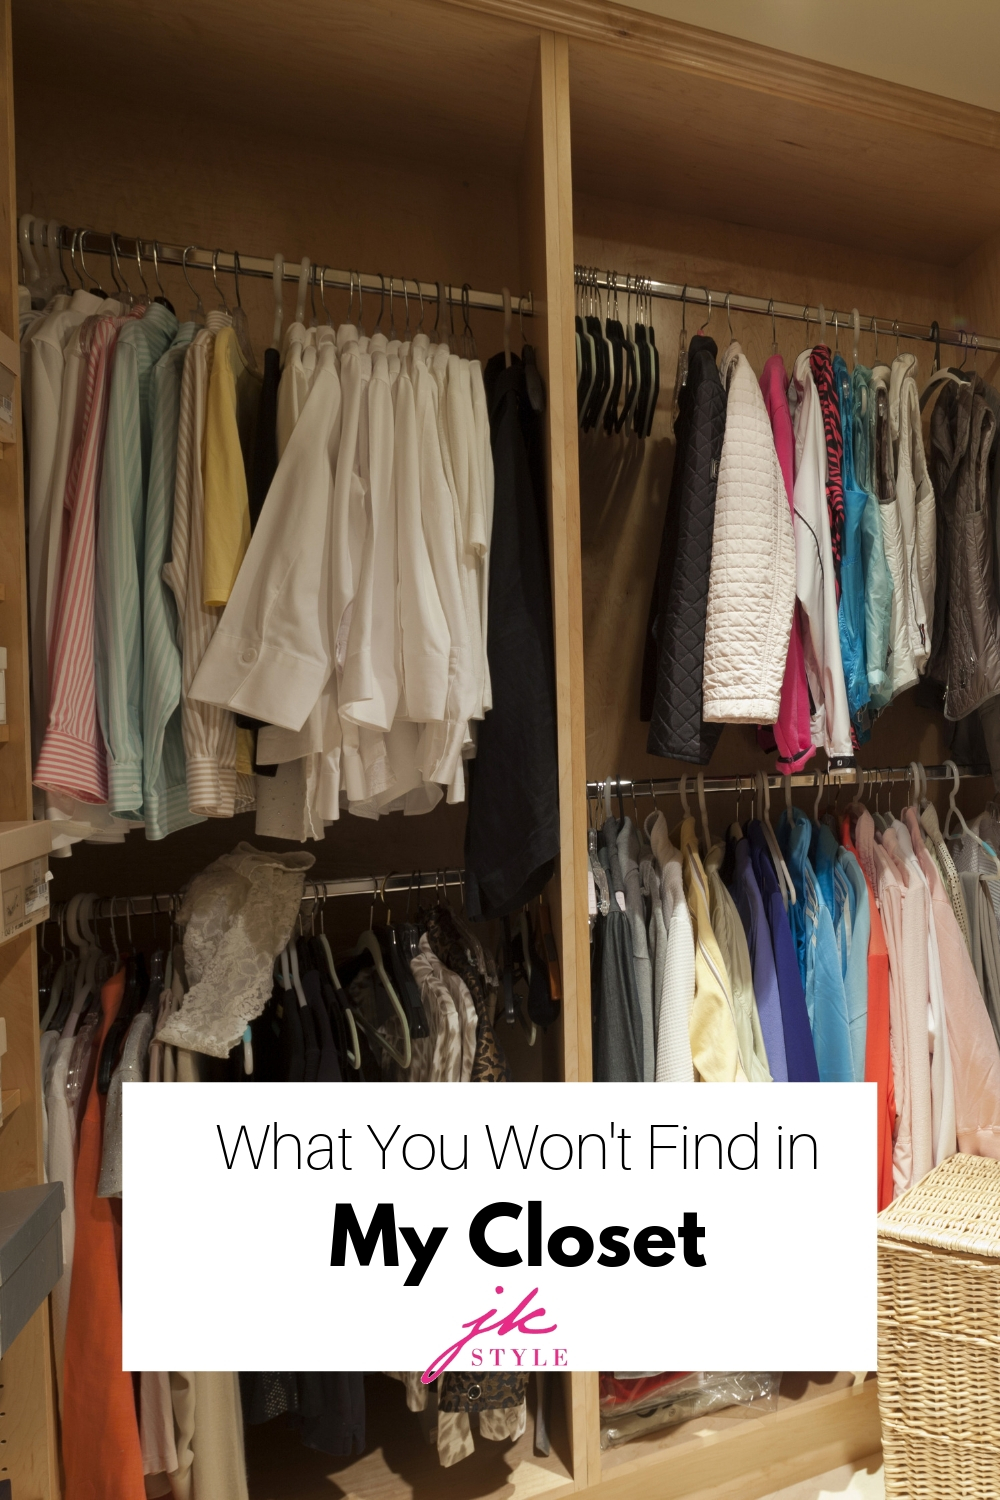 what you won't find in my closet - JK Style